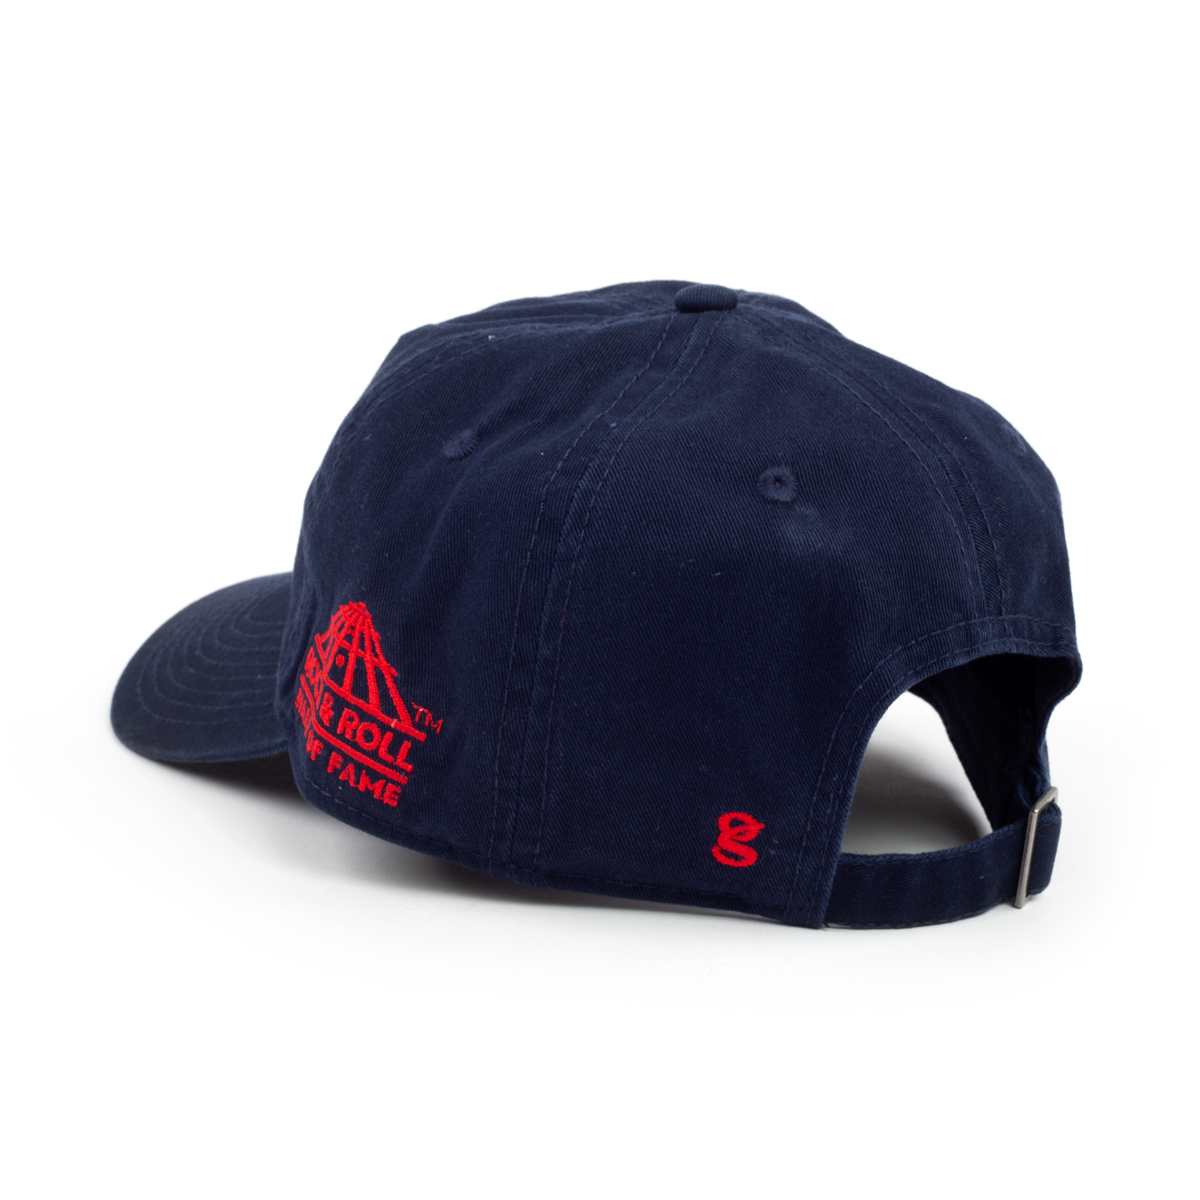 ROCK & ROLL HALL OF FAME NAVY TWILL CAP